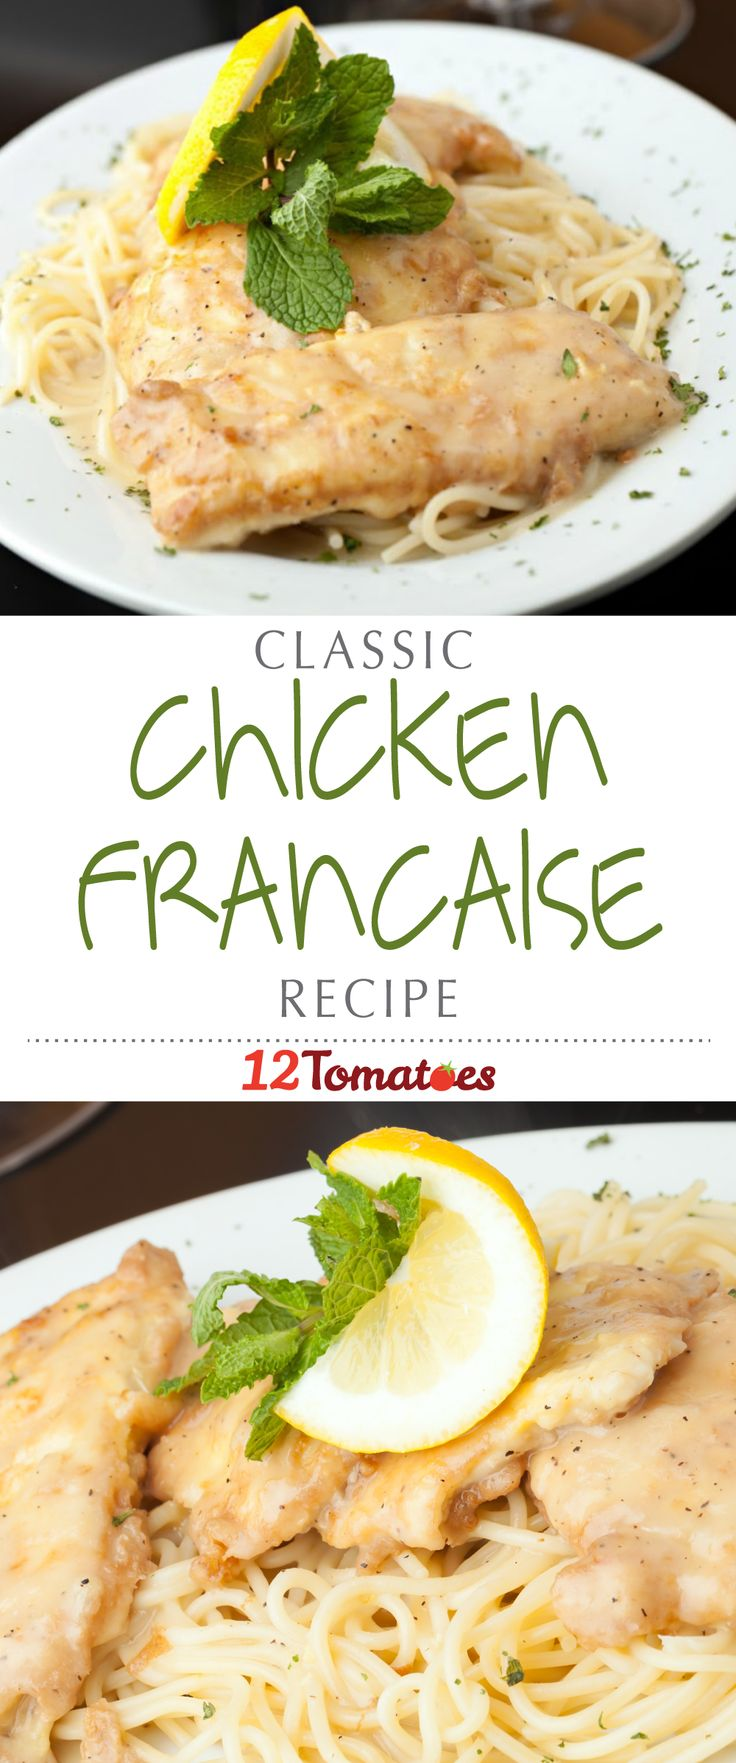 ... Chicken Francaise Recipe on Pinterest | Chicken, Recipe and Chicken